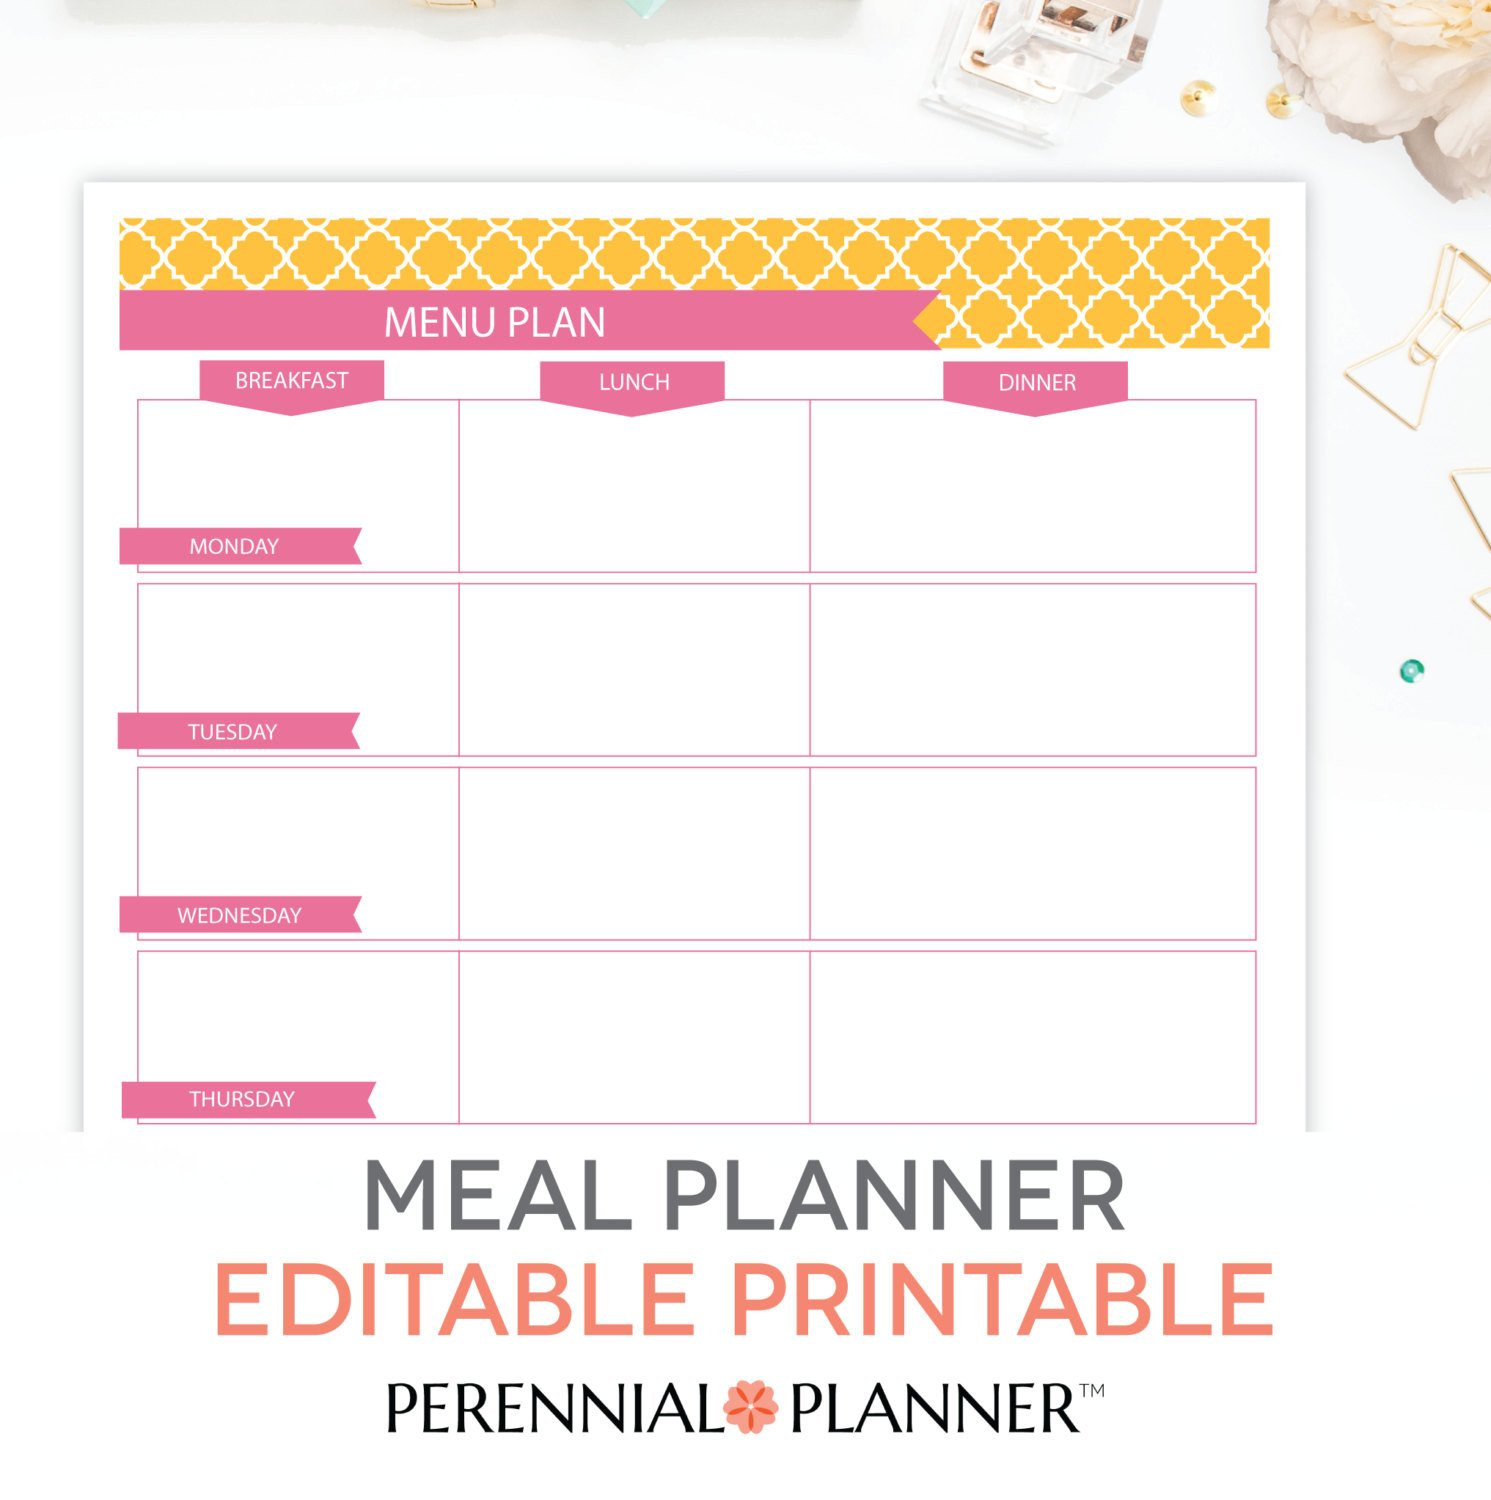 Free Printable Menu Template Menu Plan Weekly Meal Planning Template Printable Editable